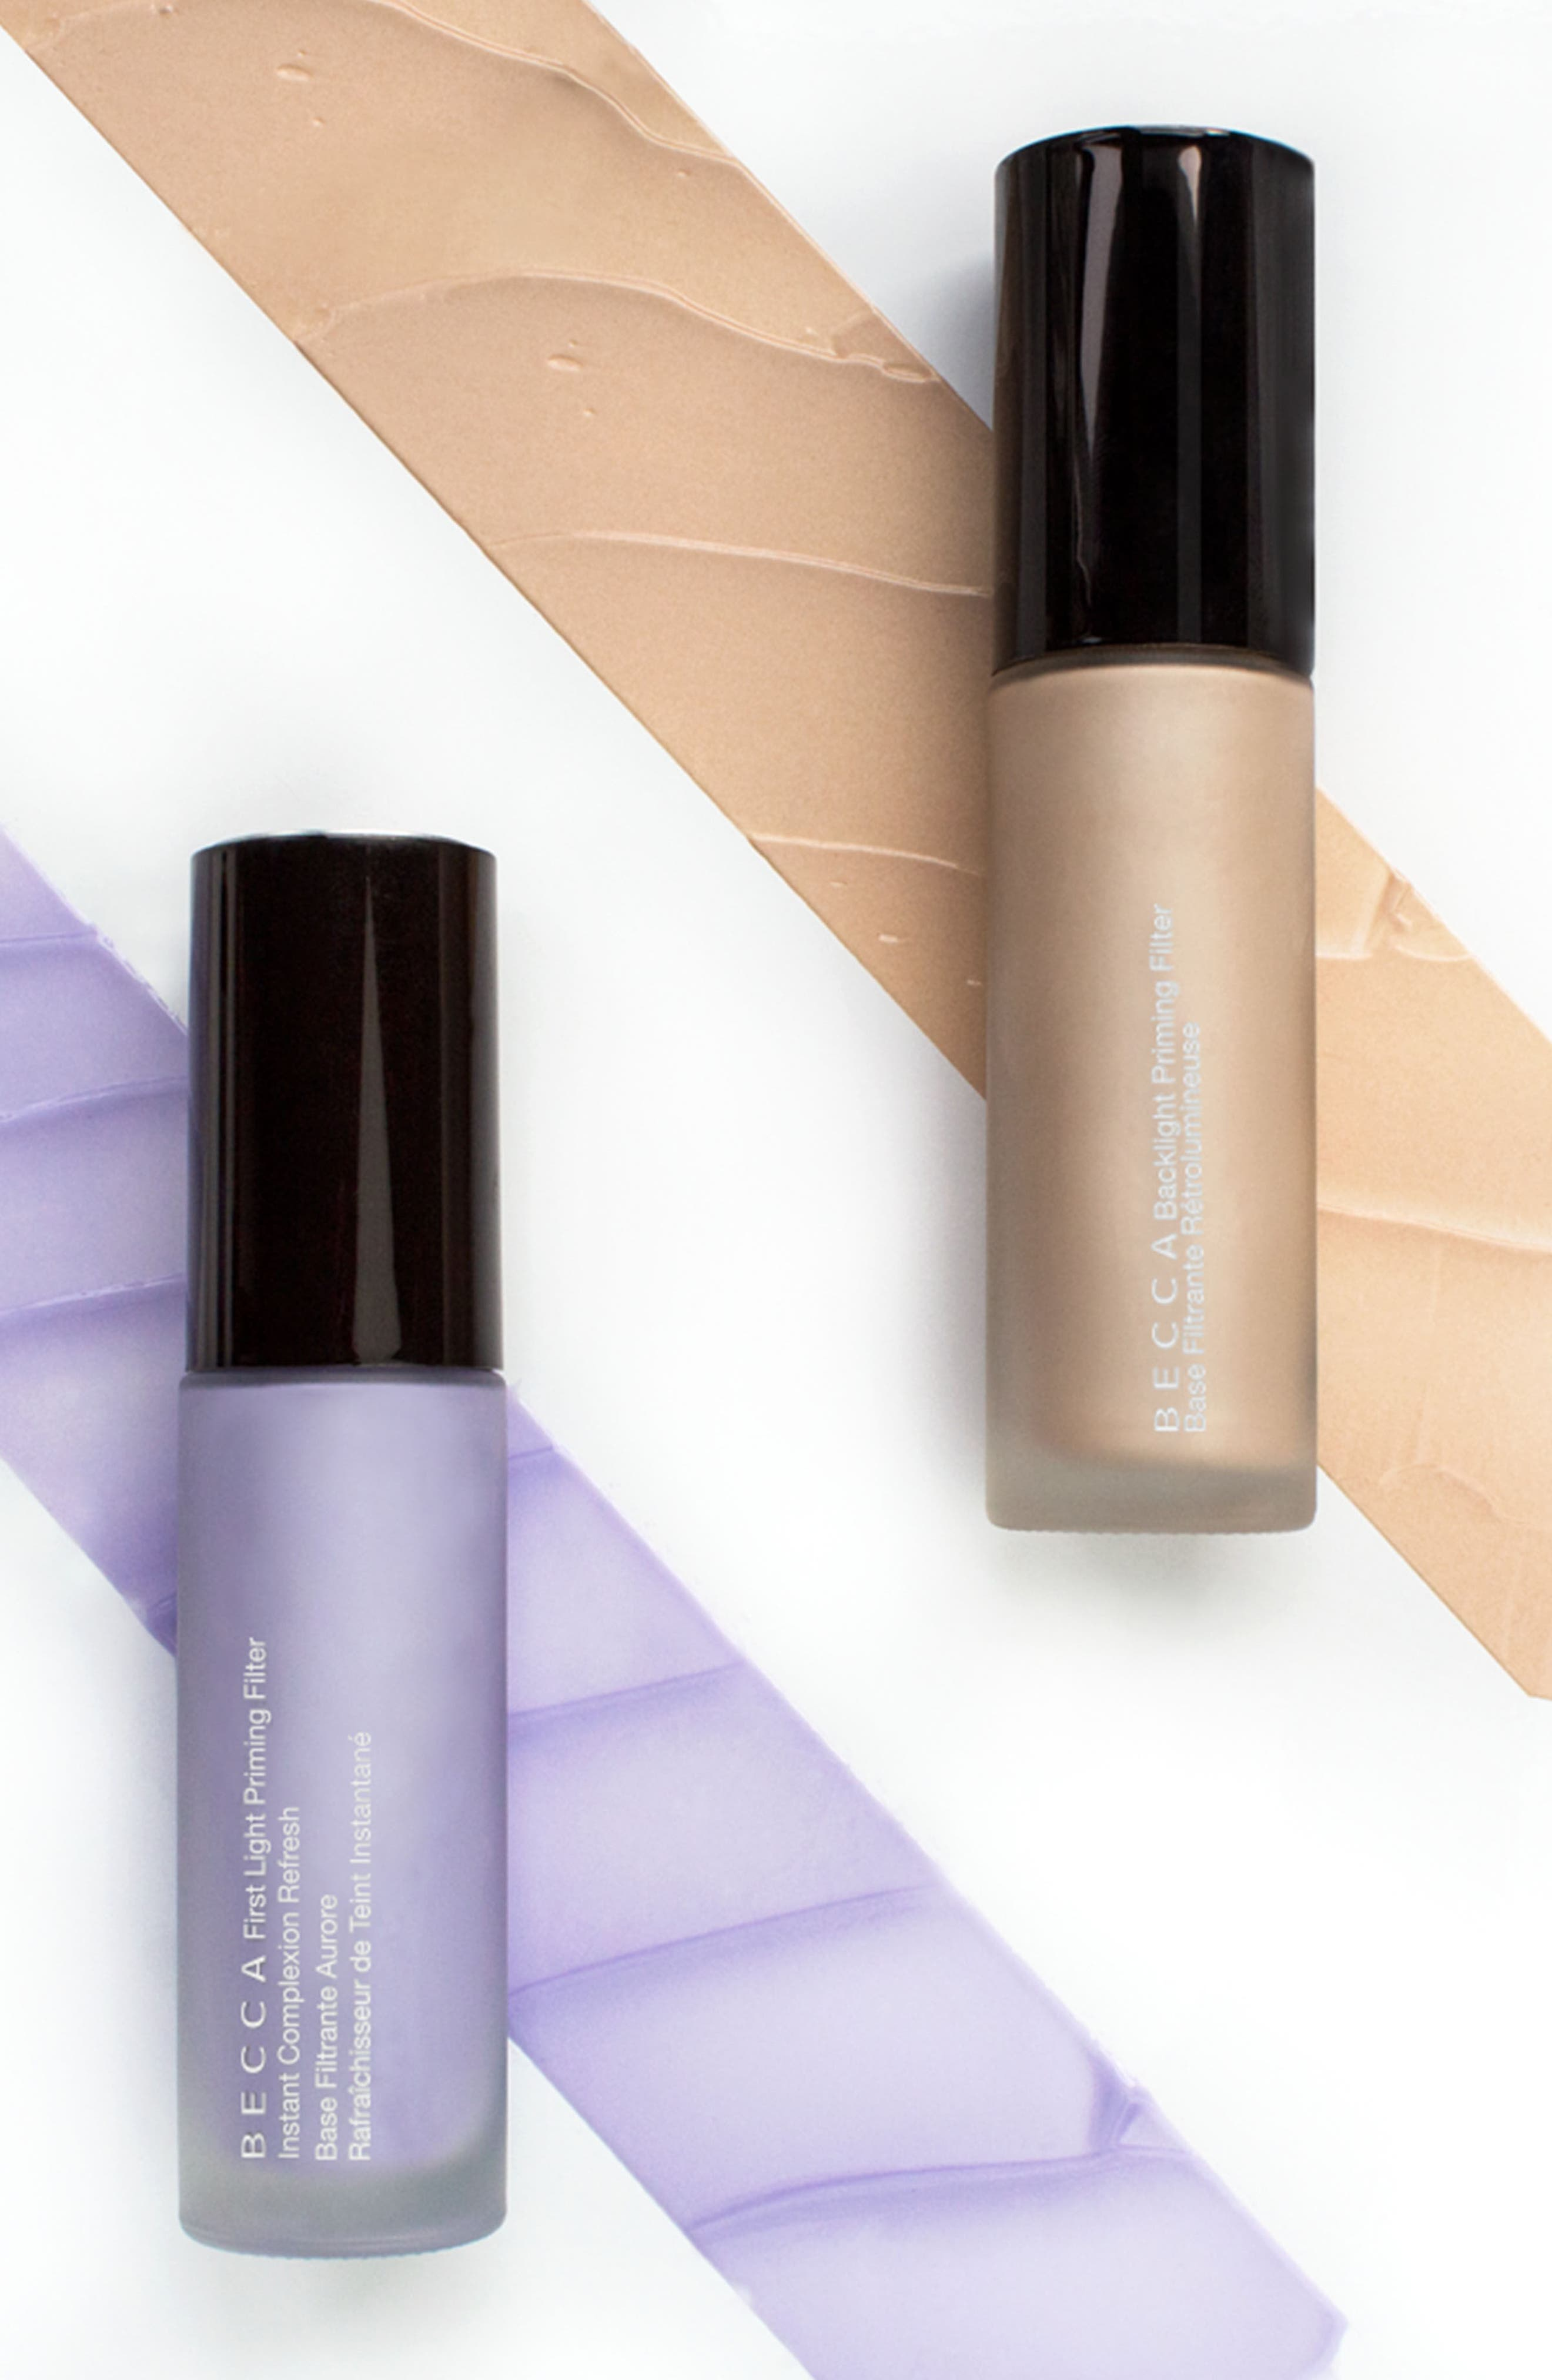 BECCA First Light Priming Filter Instant Complexion Refresh,                             Alternate thumbnail 11, color,                             No Color